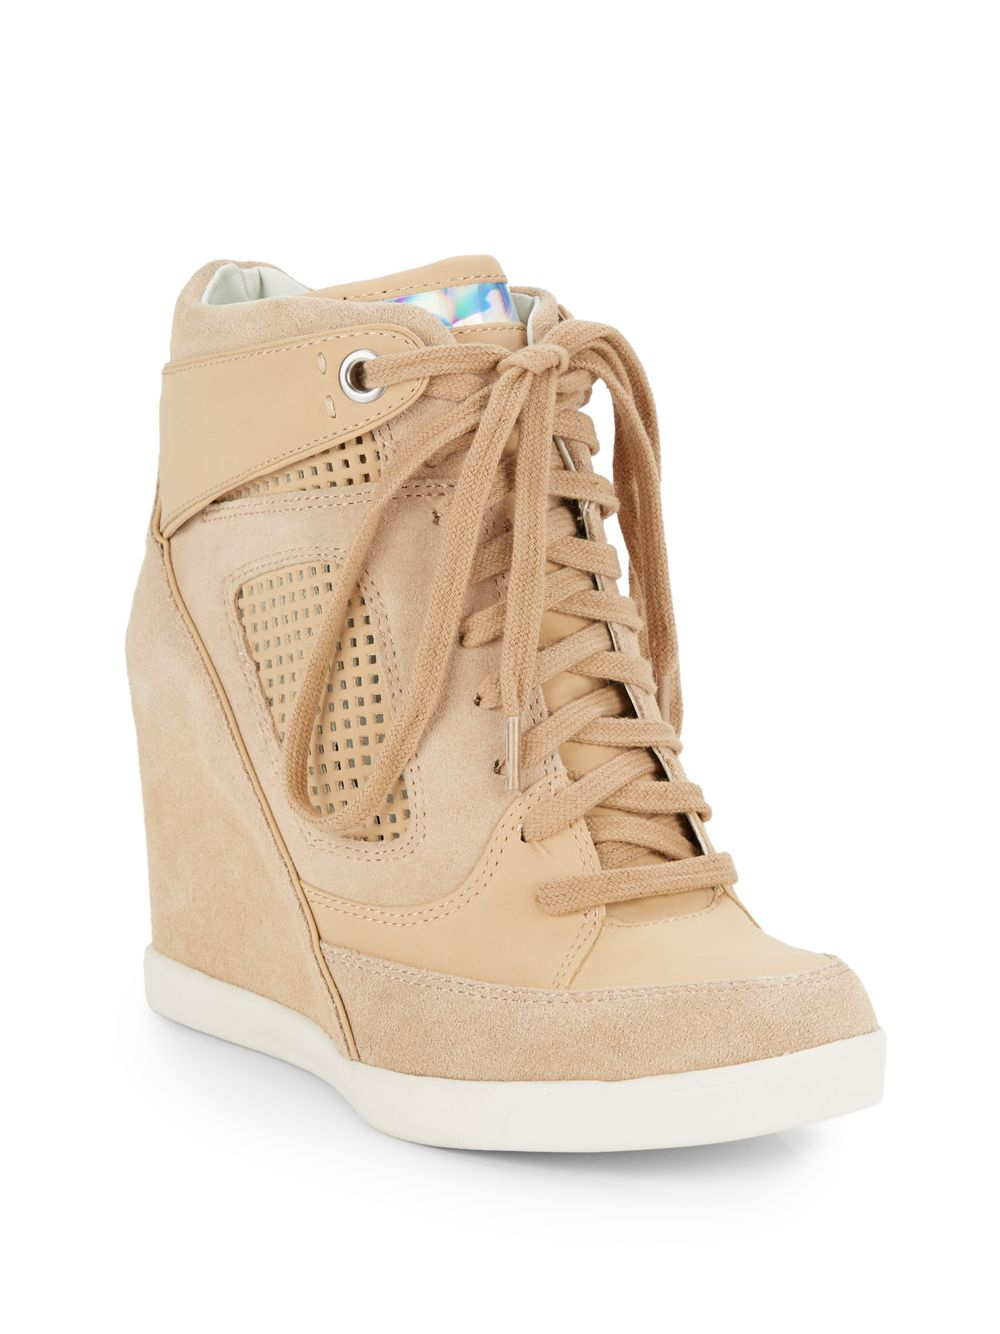 6c98645e734 Lyst - French Connection Marla Suede   Leather Wedge Sneakers in Natural